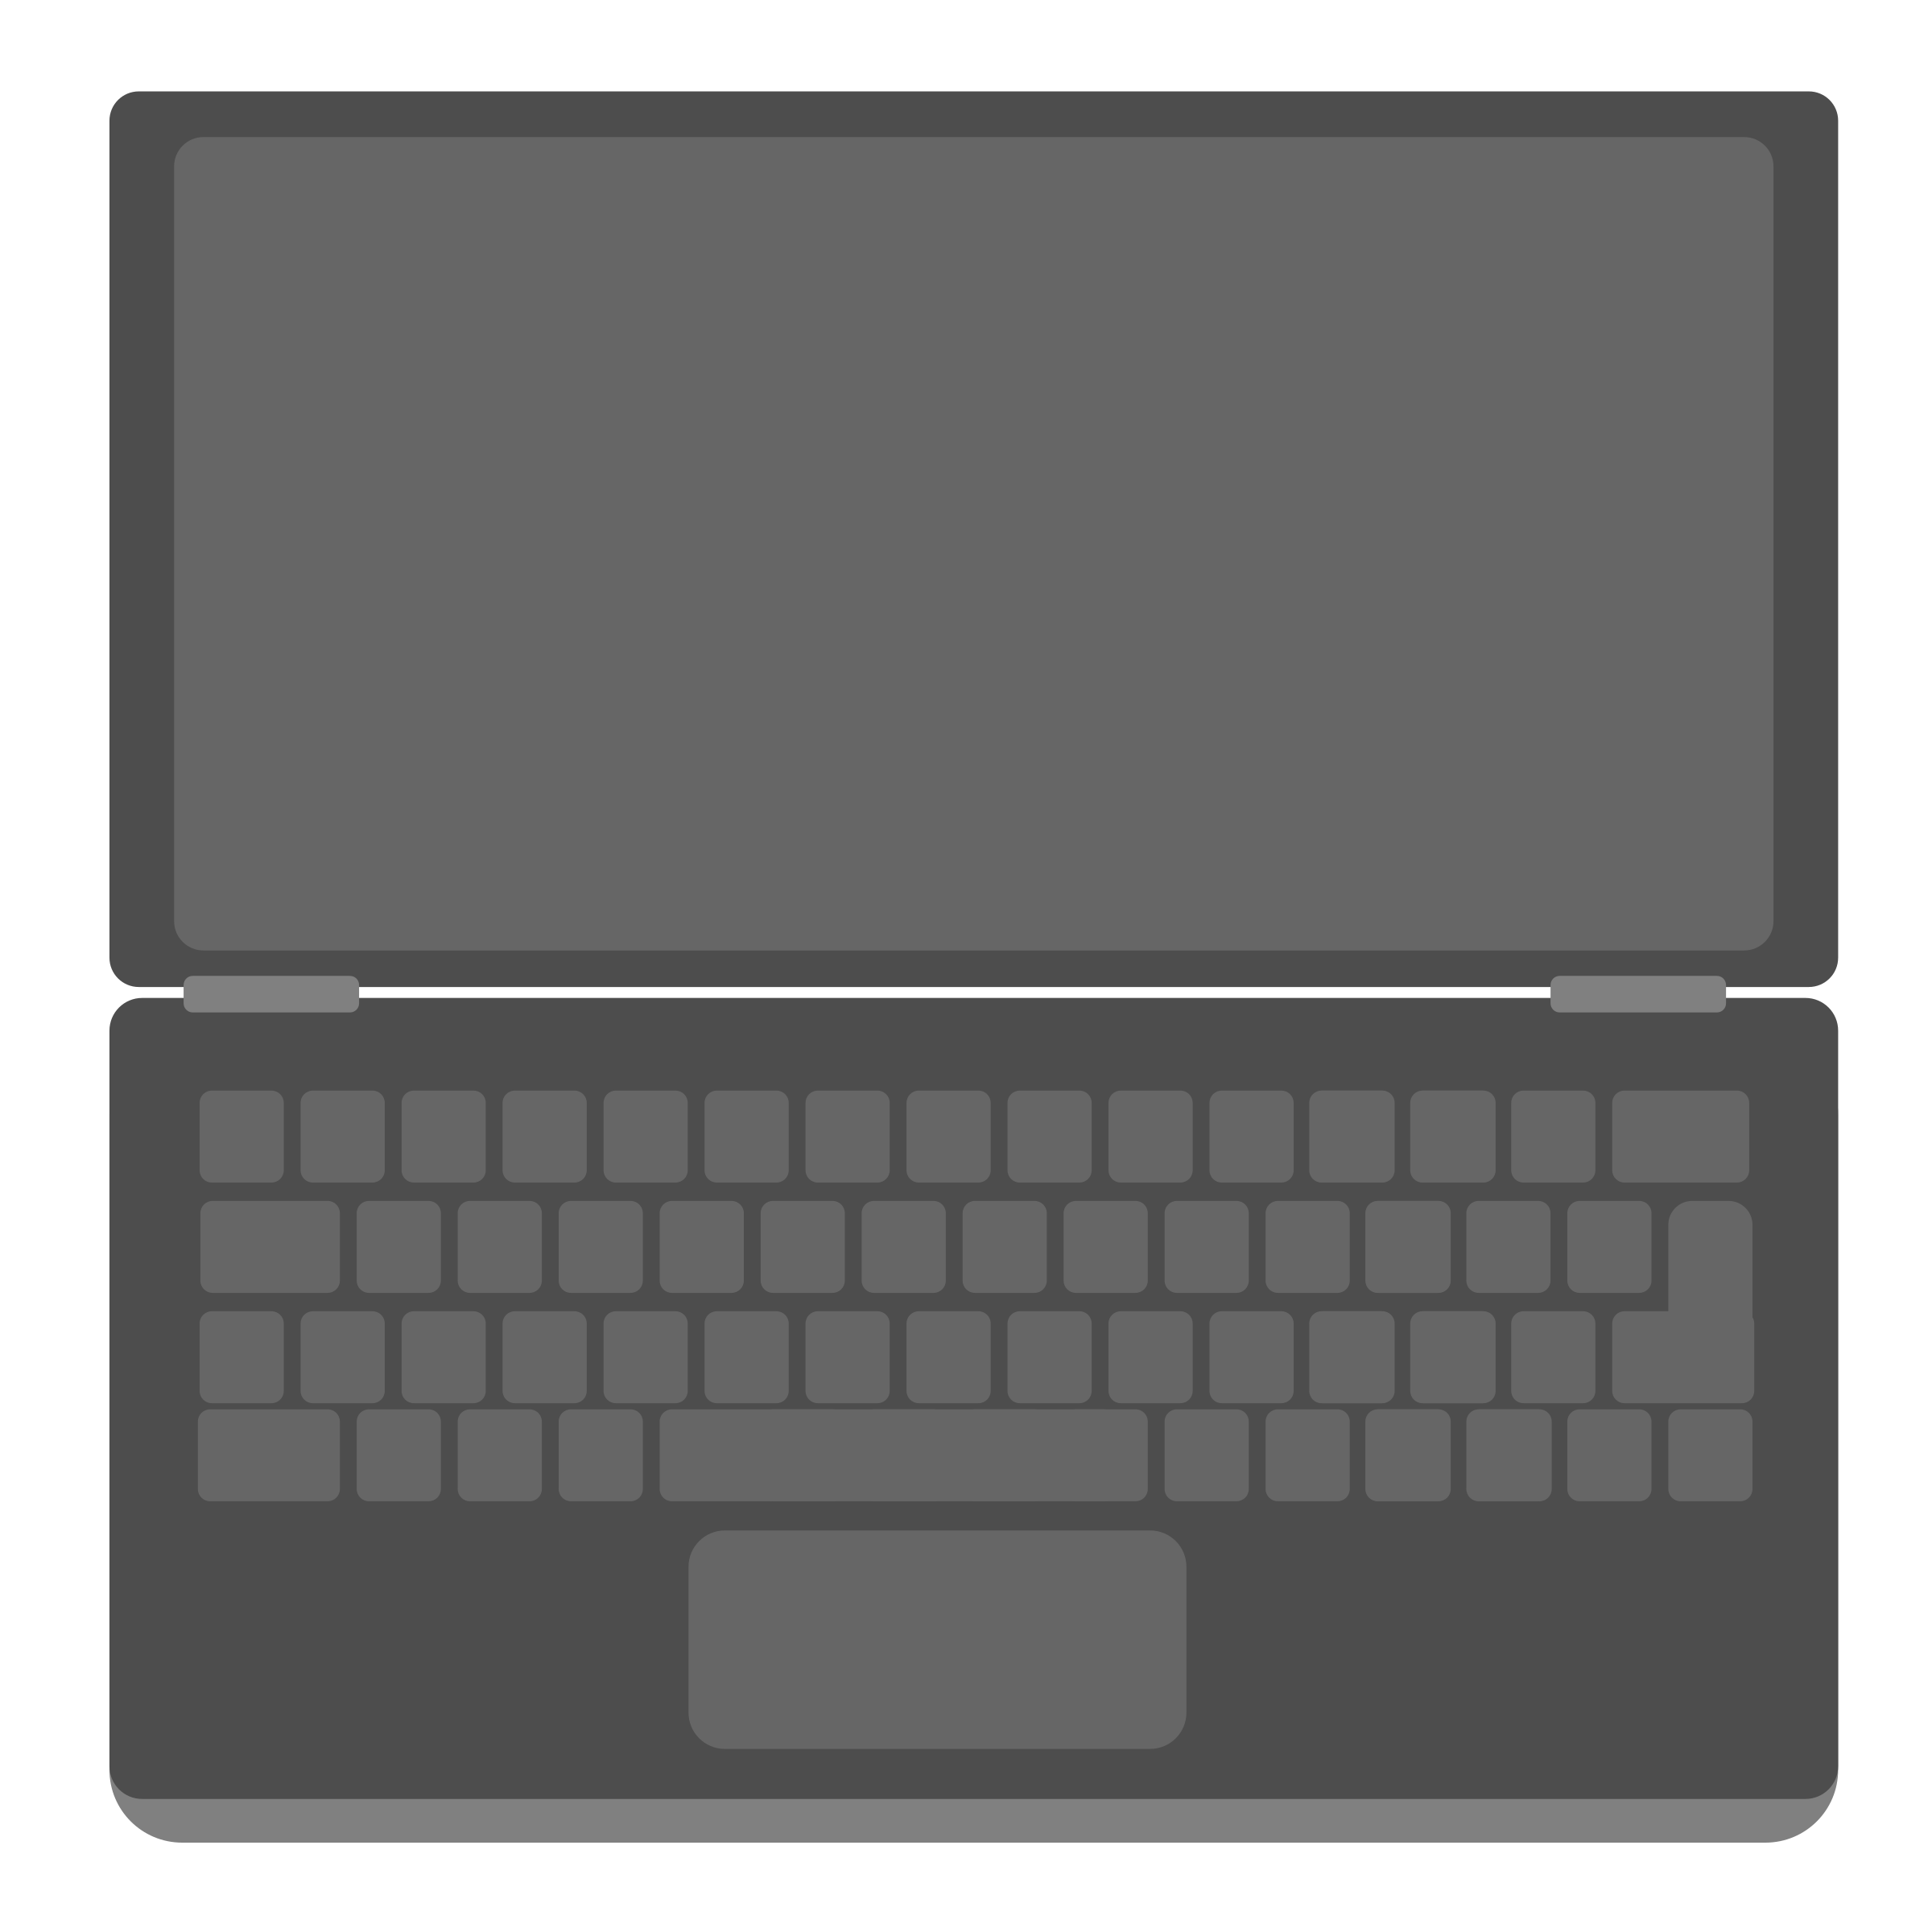 laptop by dindinG41TR3